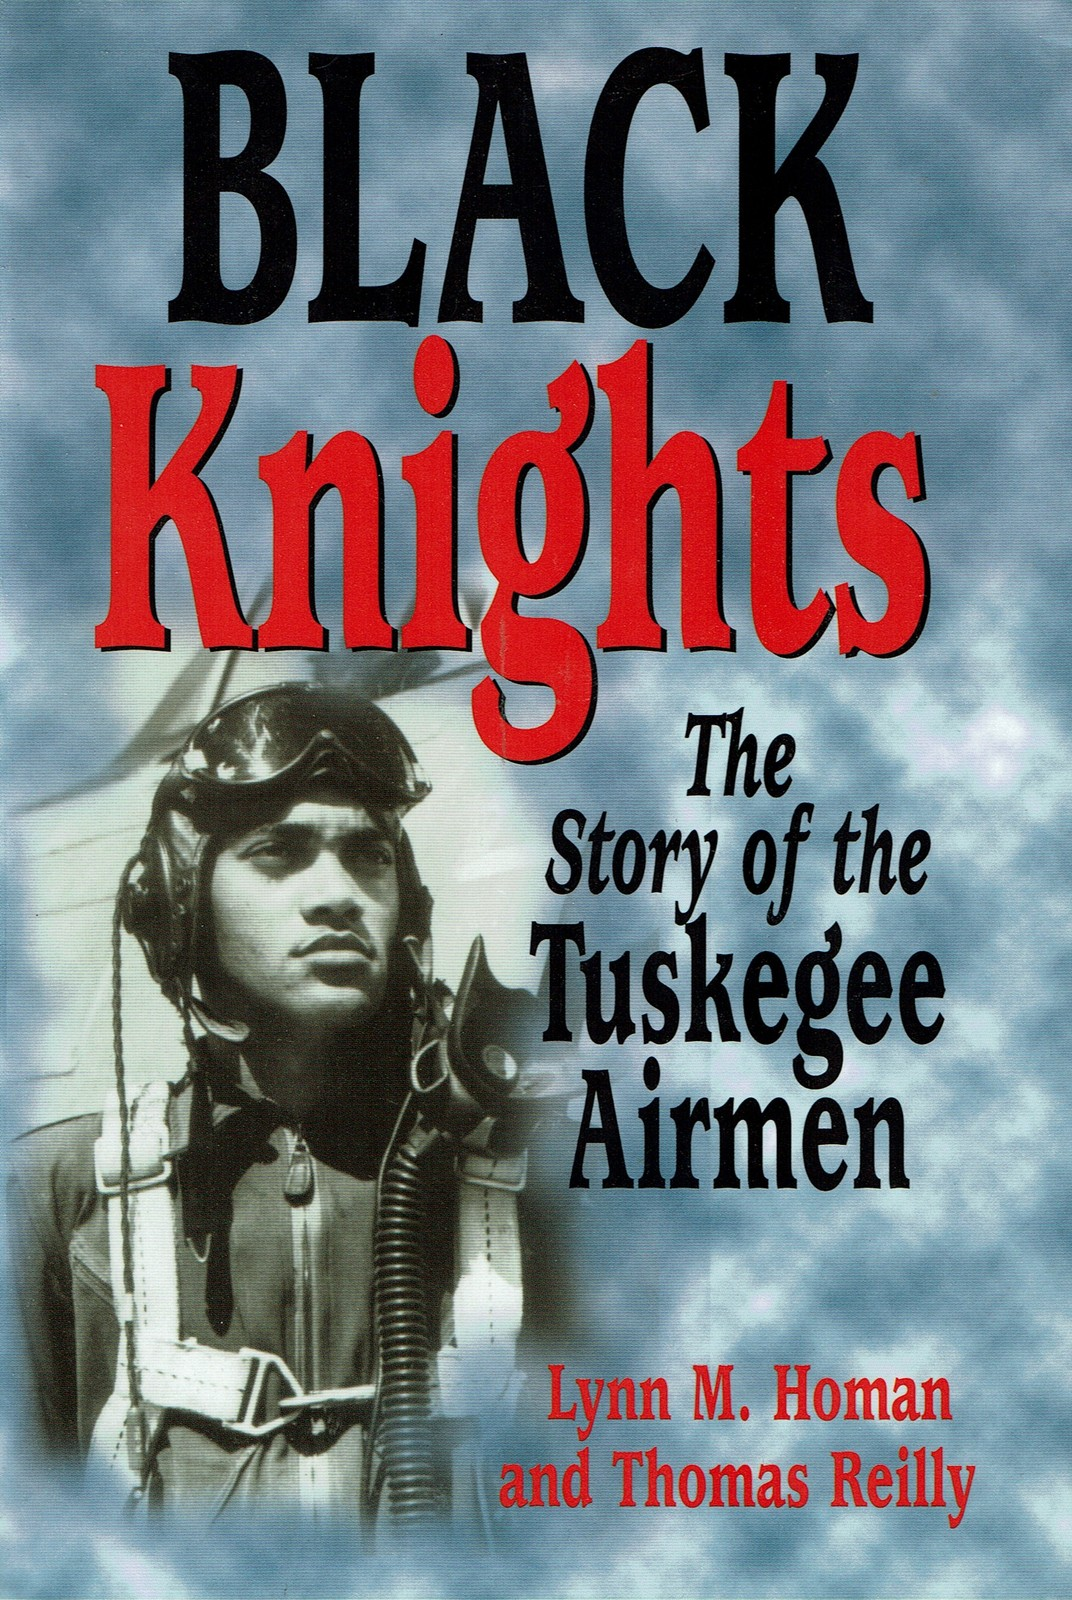 Black Knights: The Story of the Tuskegee Airmen, by Lynn Homan and Thomas Reilly